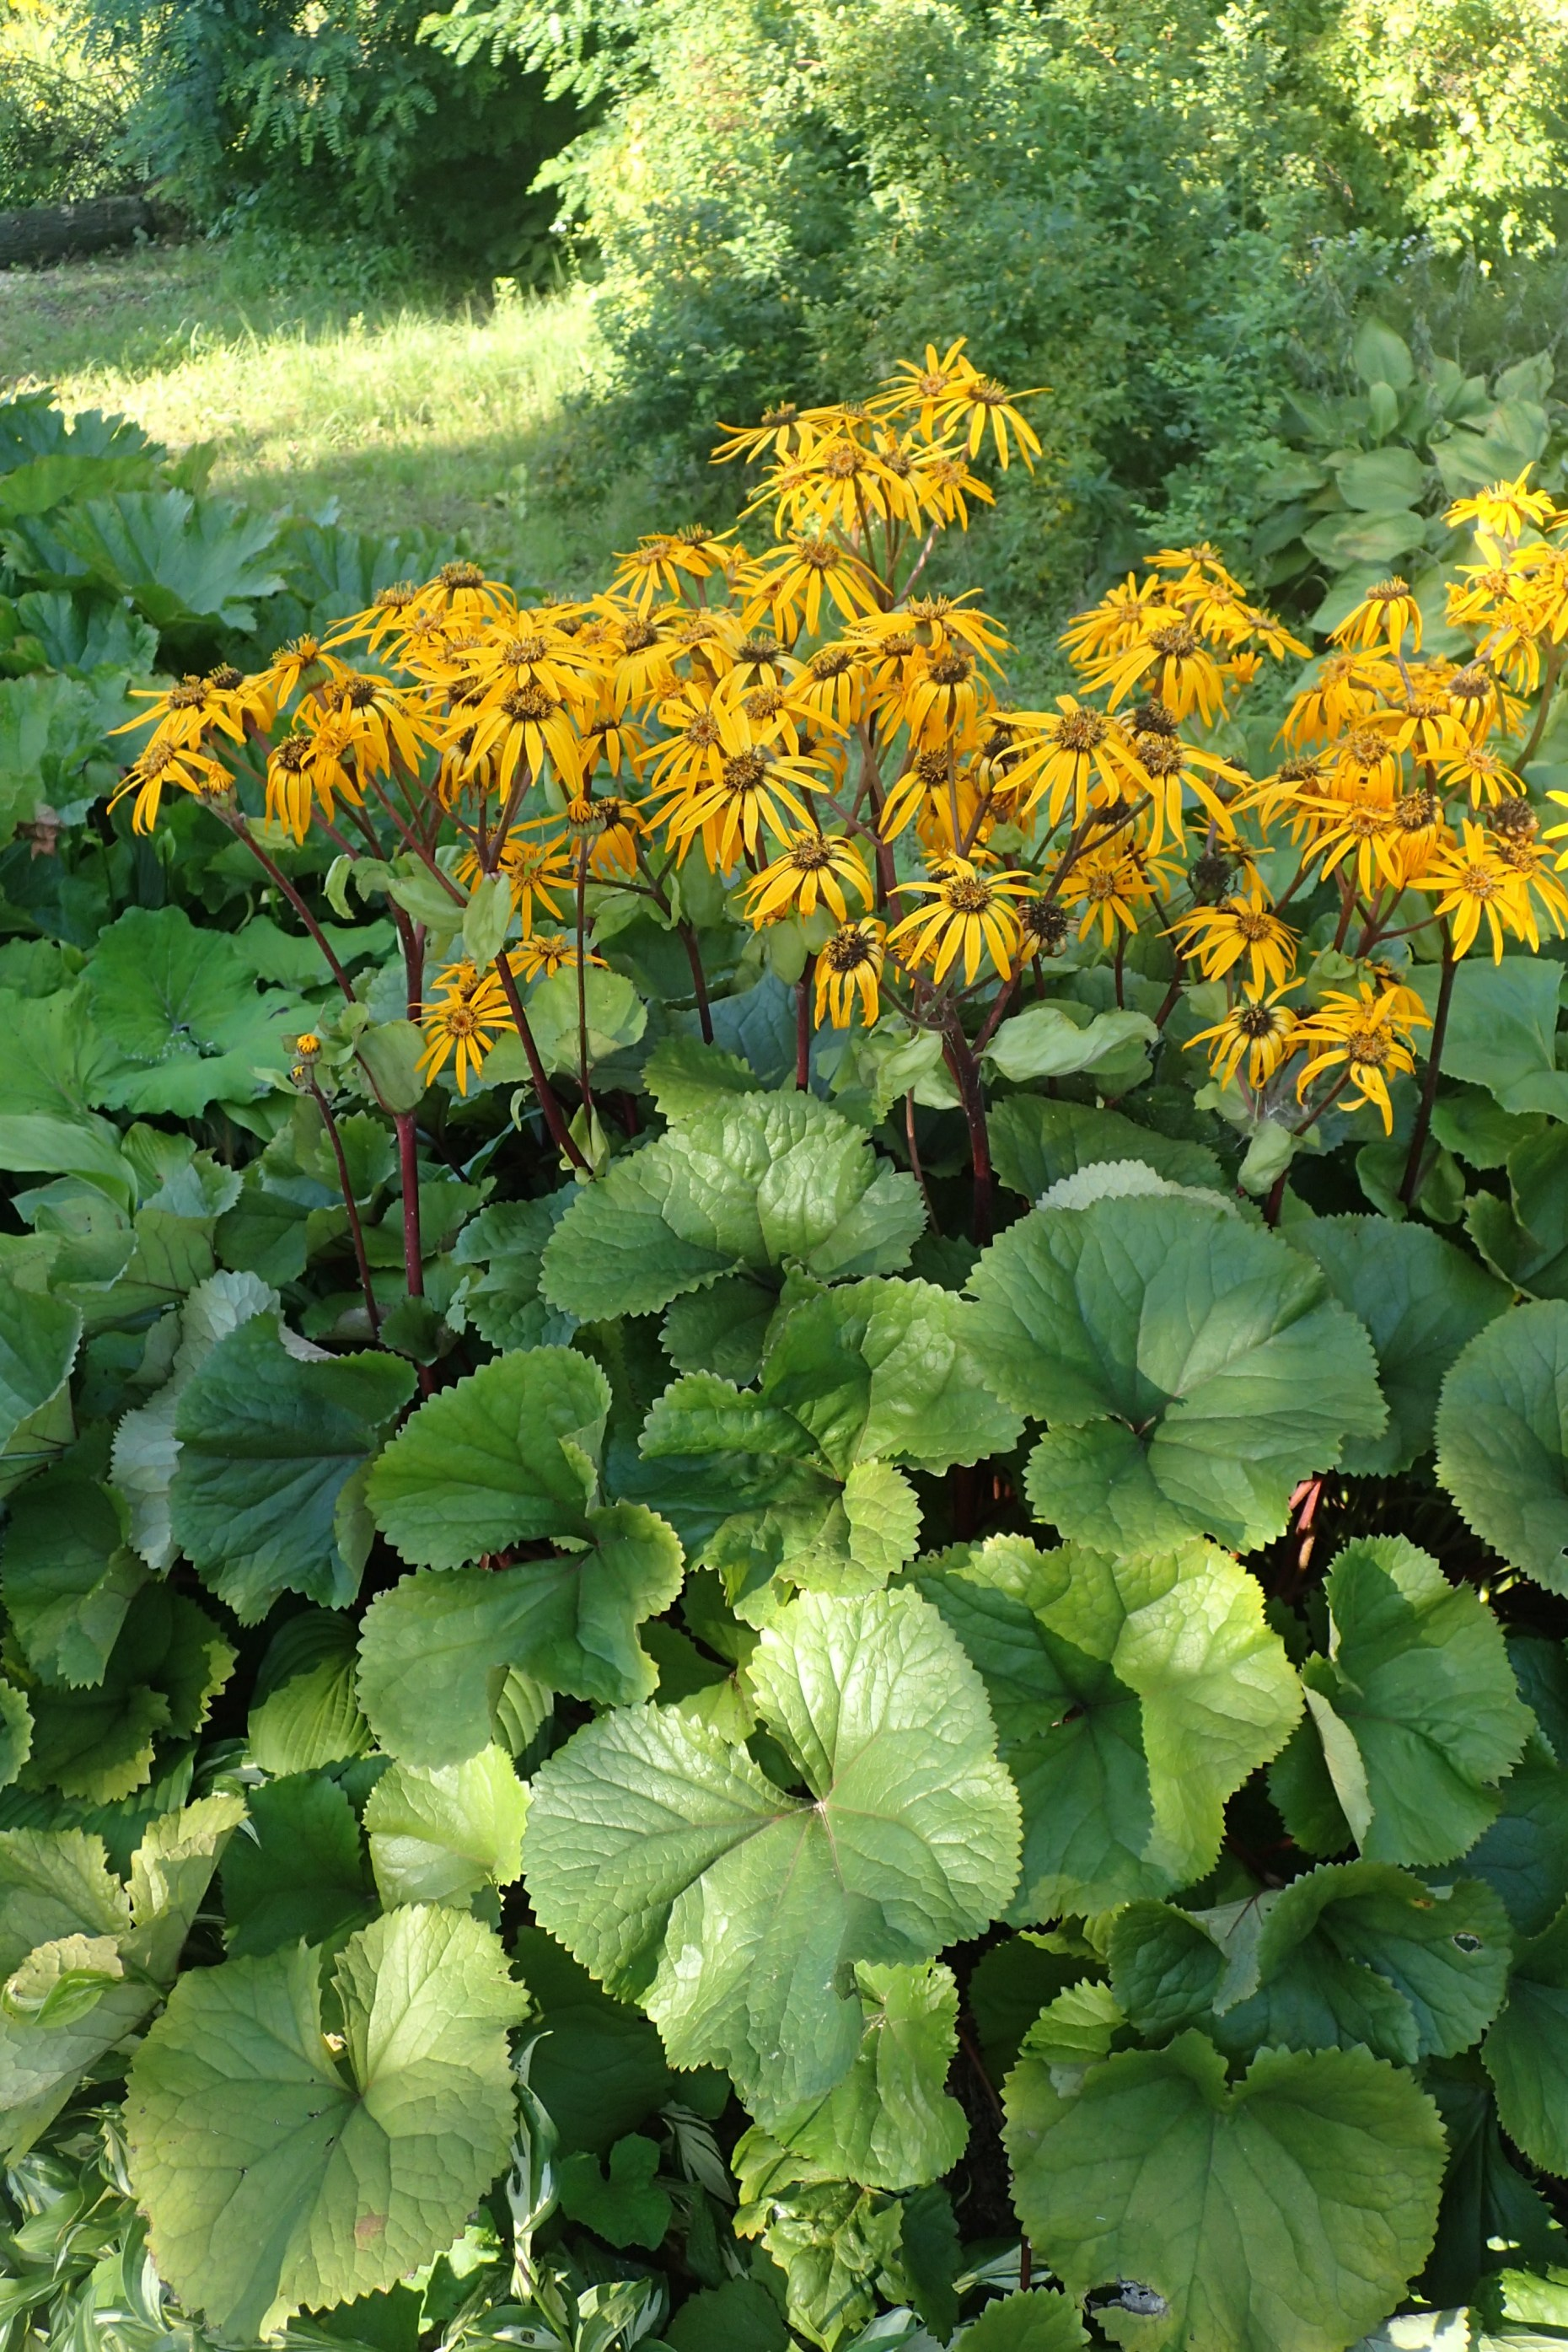 Large and dense foliage of Ligularia with tall flower spike blooms above